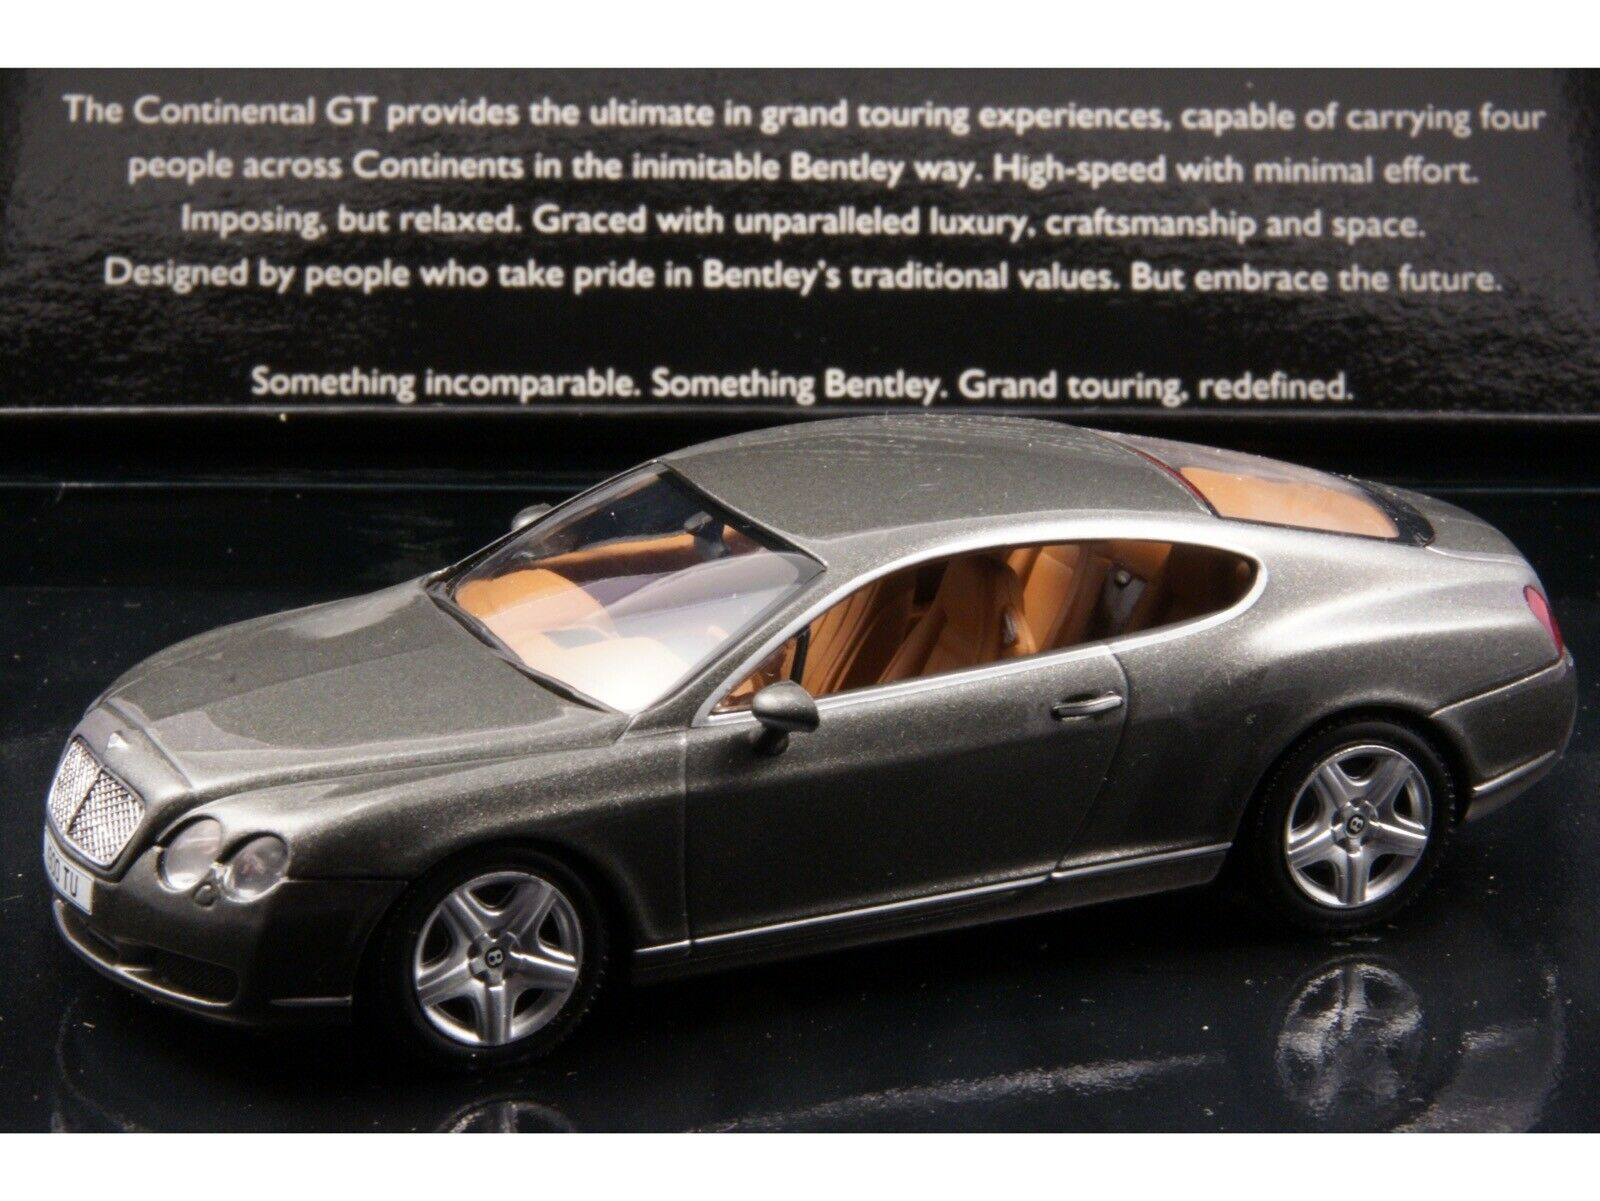 Bentley Continental GT Dealer Edition 1 43 Cypress vert by MINICHAMPS (BL 313)